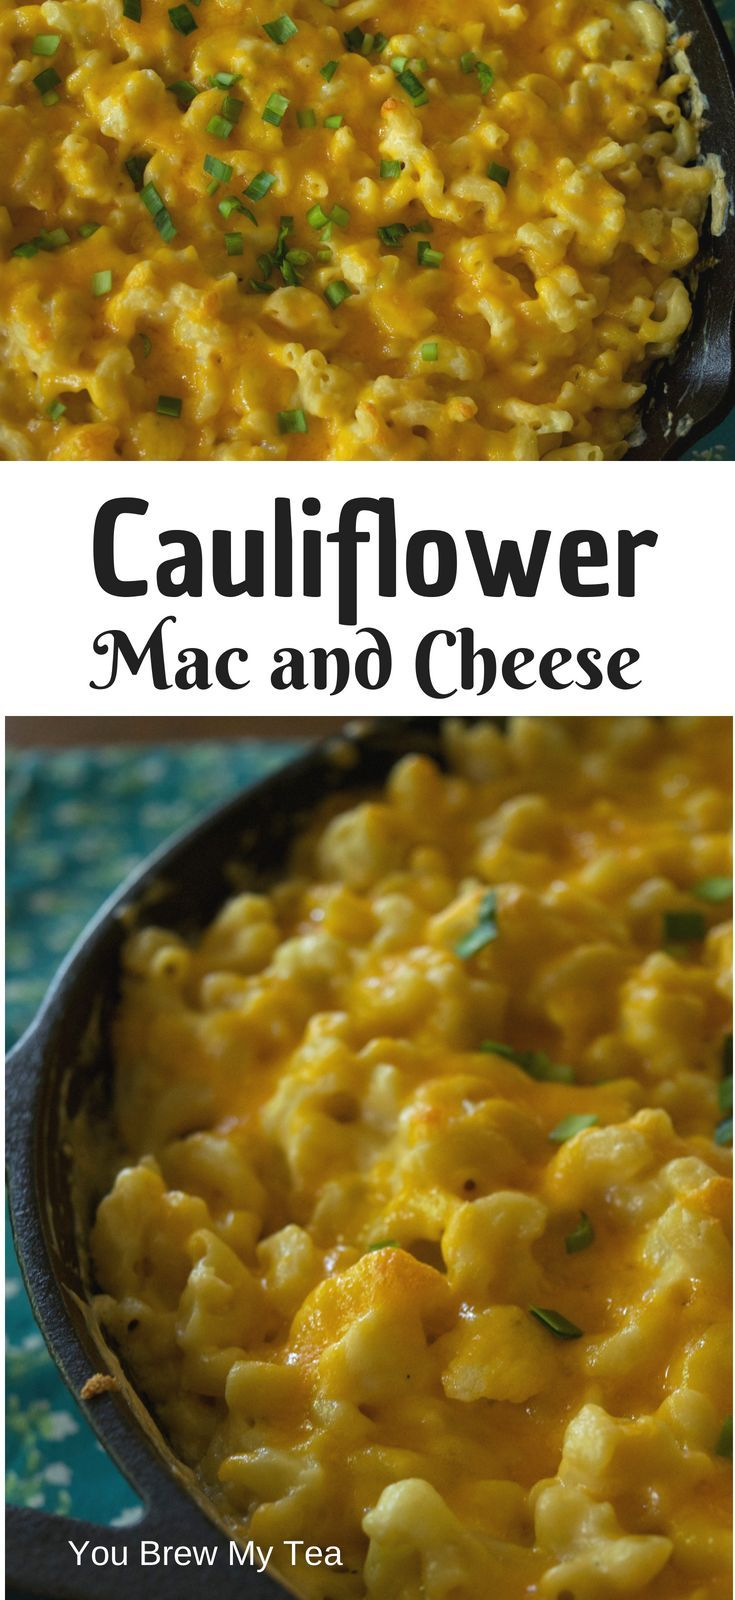 Cauliflower Mac and Cheese images